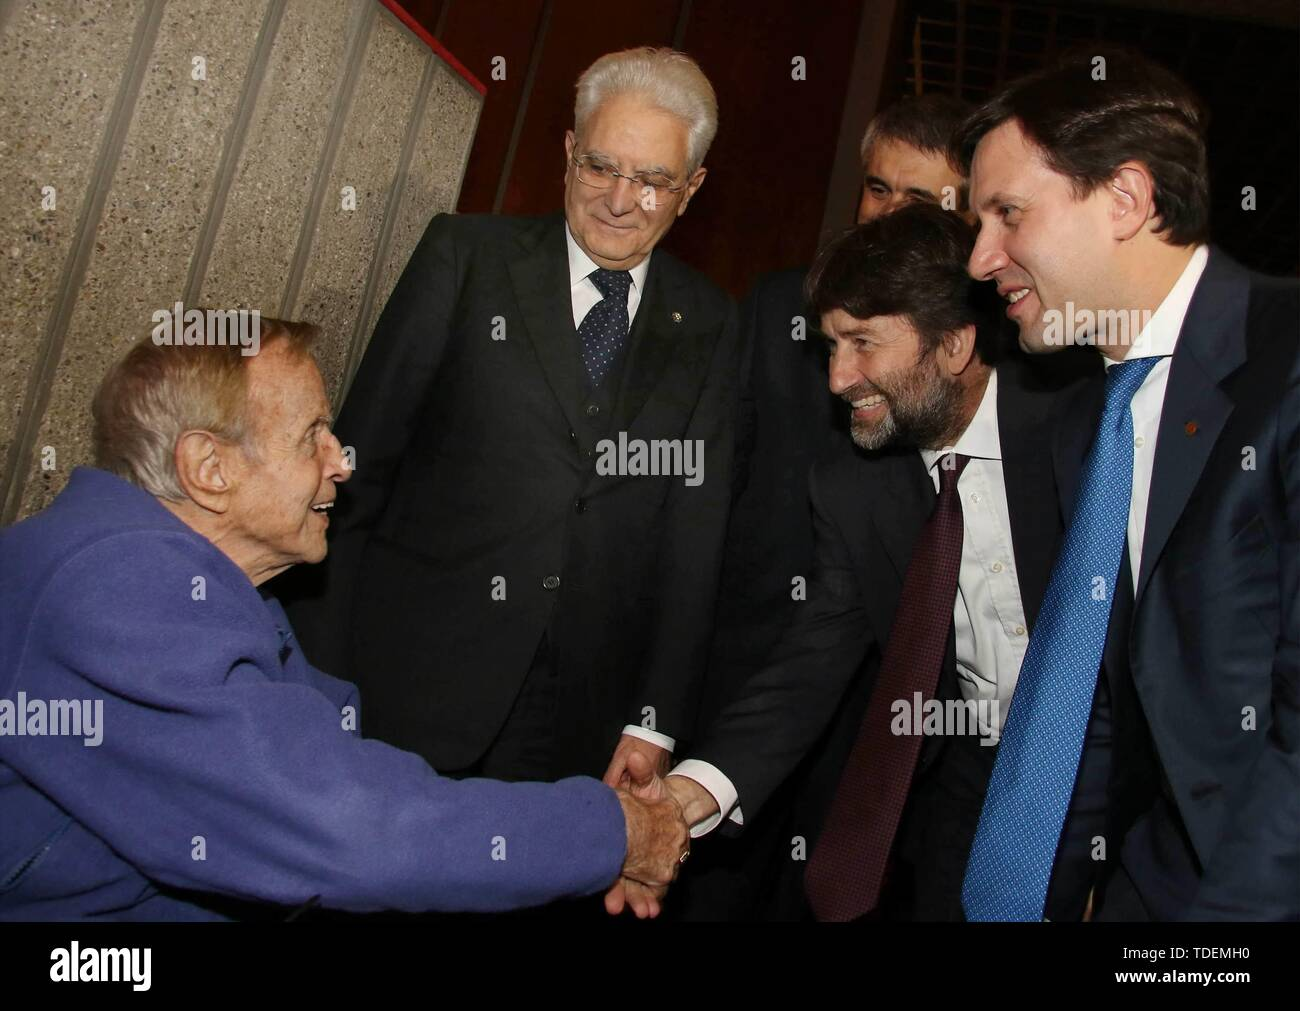 Florence, President Matarella visiting the Nation received from the Riffeser family, present Franco Zeffirelli (Florence/IPA/Fotogramma, - 2016-11-07) ps the photo is usable in respect of the context in which it was taken, and without defamatory intent of the decorum of the persons represented (Firenze/IPA/Fotogramma, Photo Repertoire - 2019-06-15) p.s. la foto e' utilizzabile nel rispetto del contesto in cui e' stata scattata, e senza intento diffamatorio del decoro delle persone rappresentate - Stock Image